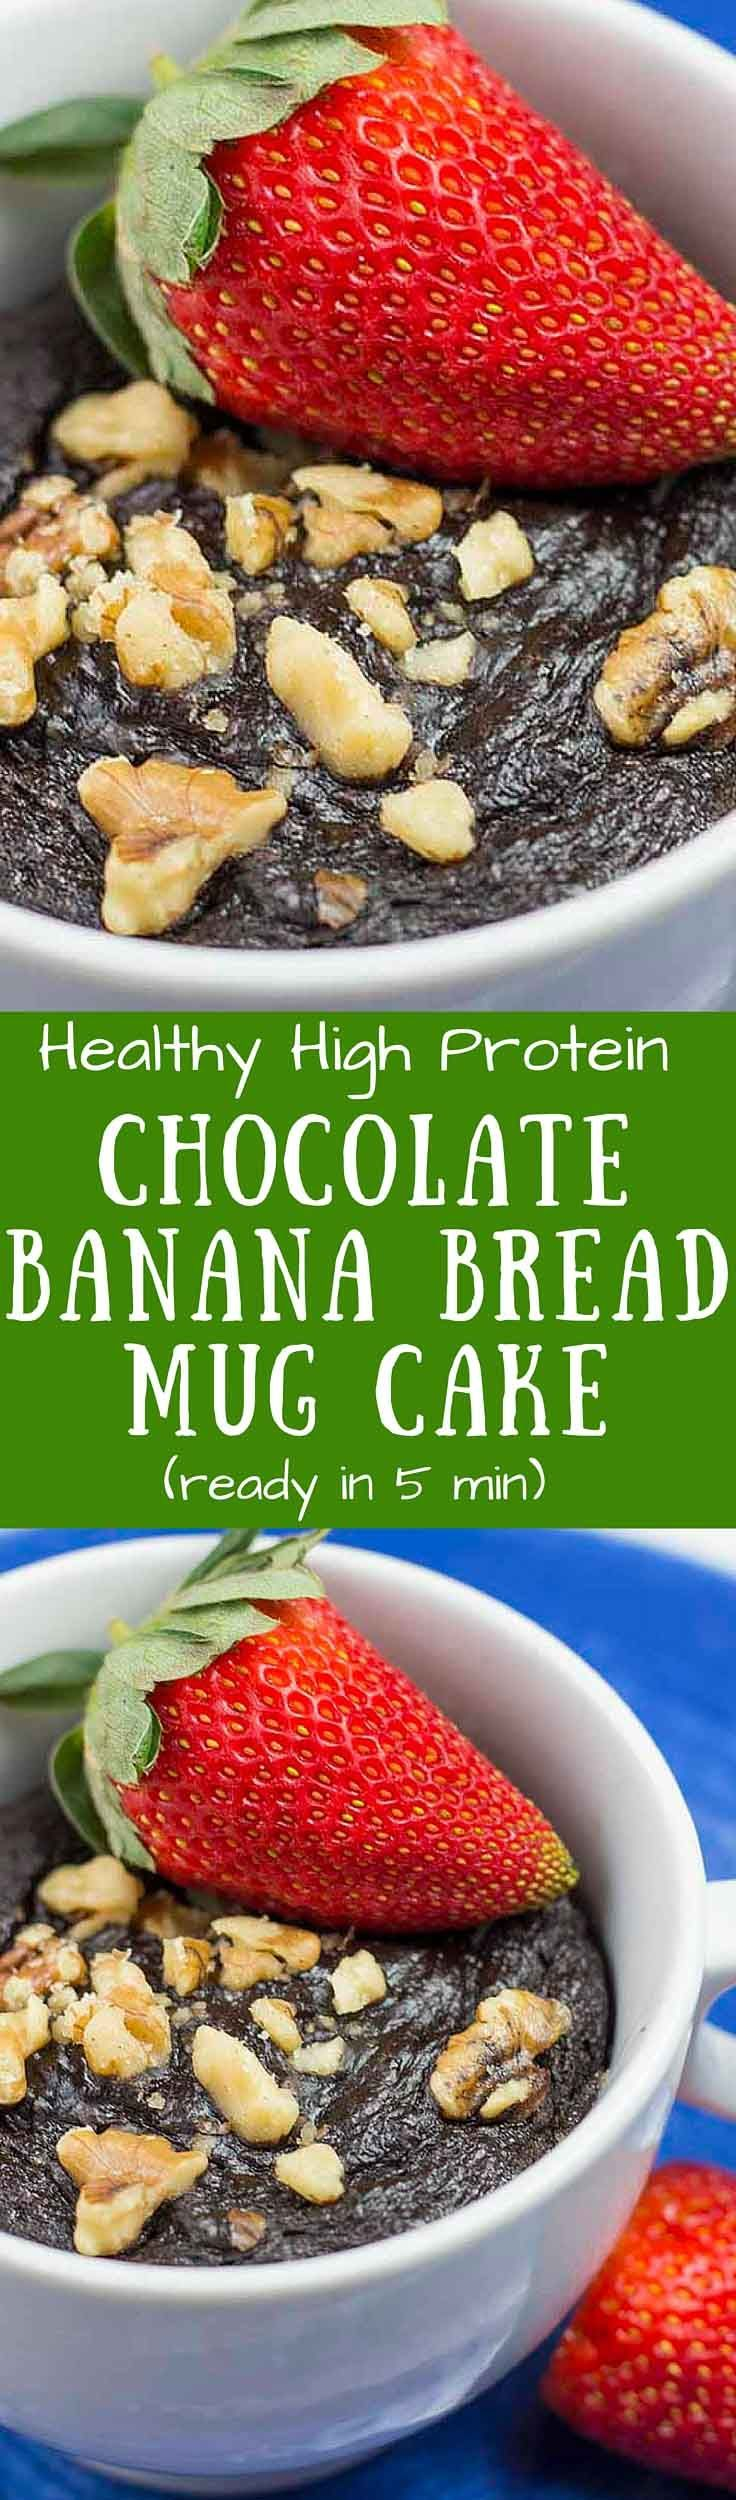 1679 best healthy creative recipes images on pinterest cooking 1679 best healthy creative recipes images on pinterest cooking food healthy eats and drink forumfinder Image collections